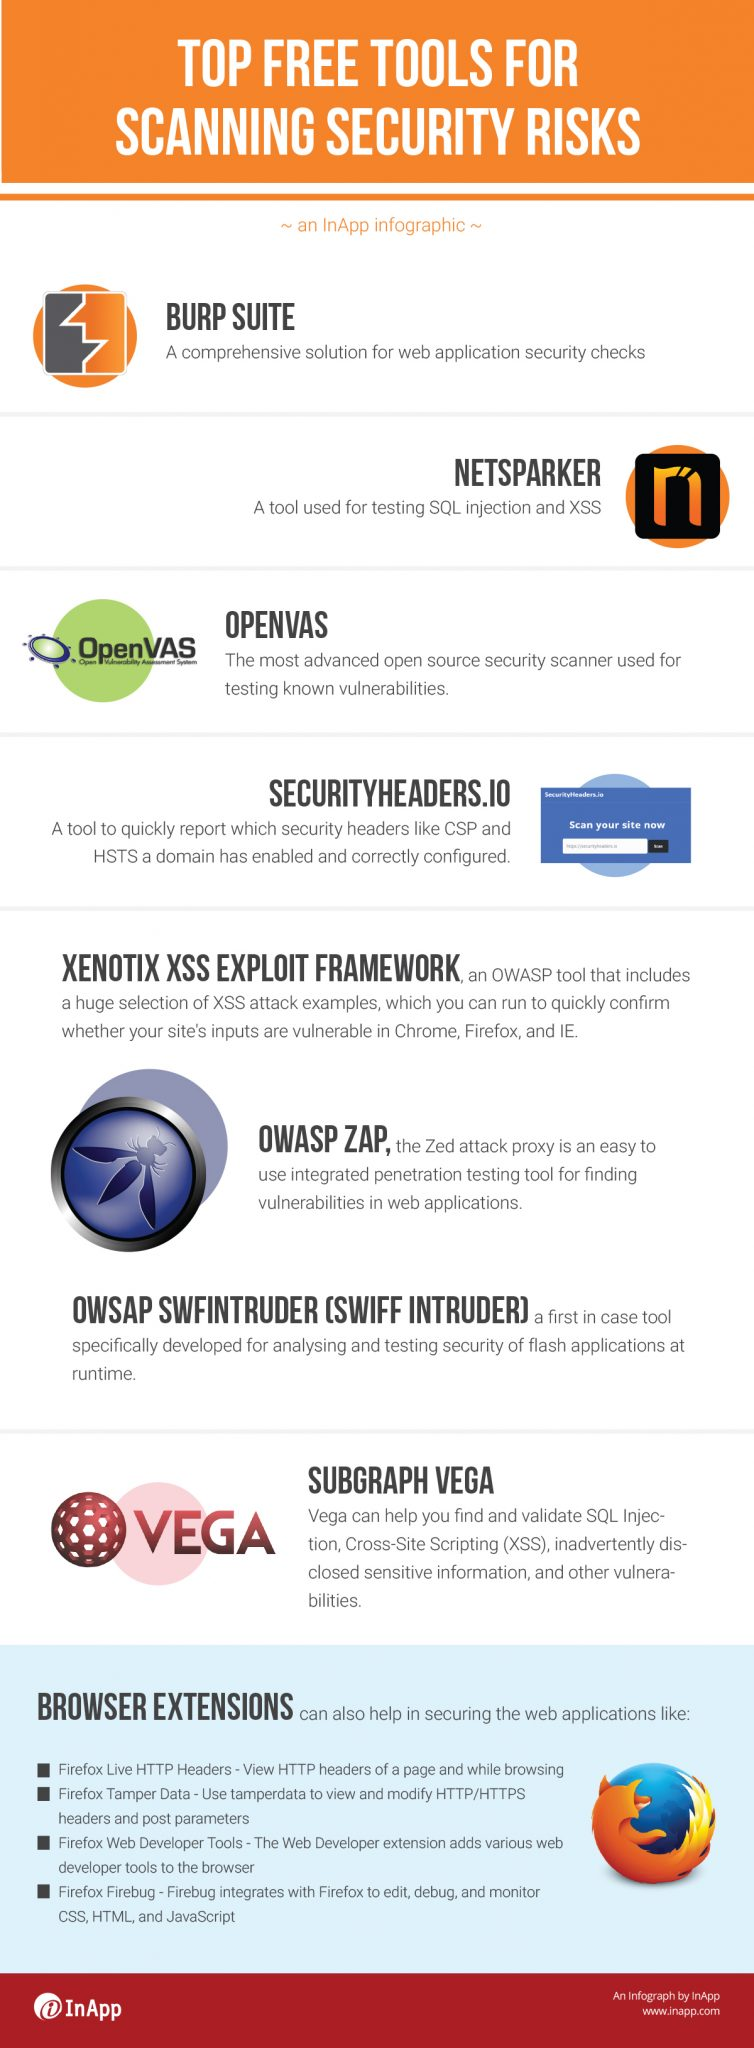 Top Free Tools for Scanning Security Risks